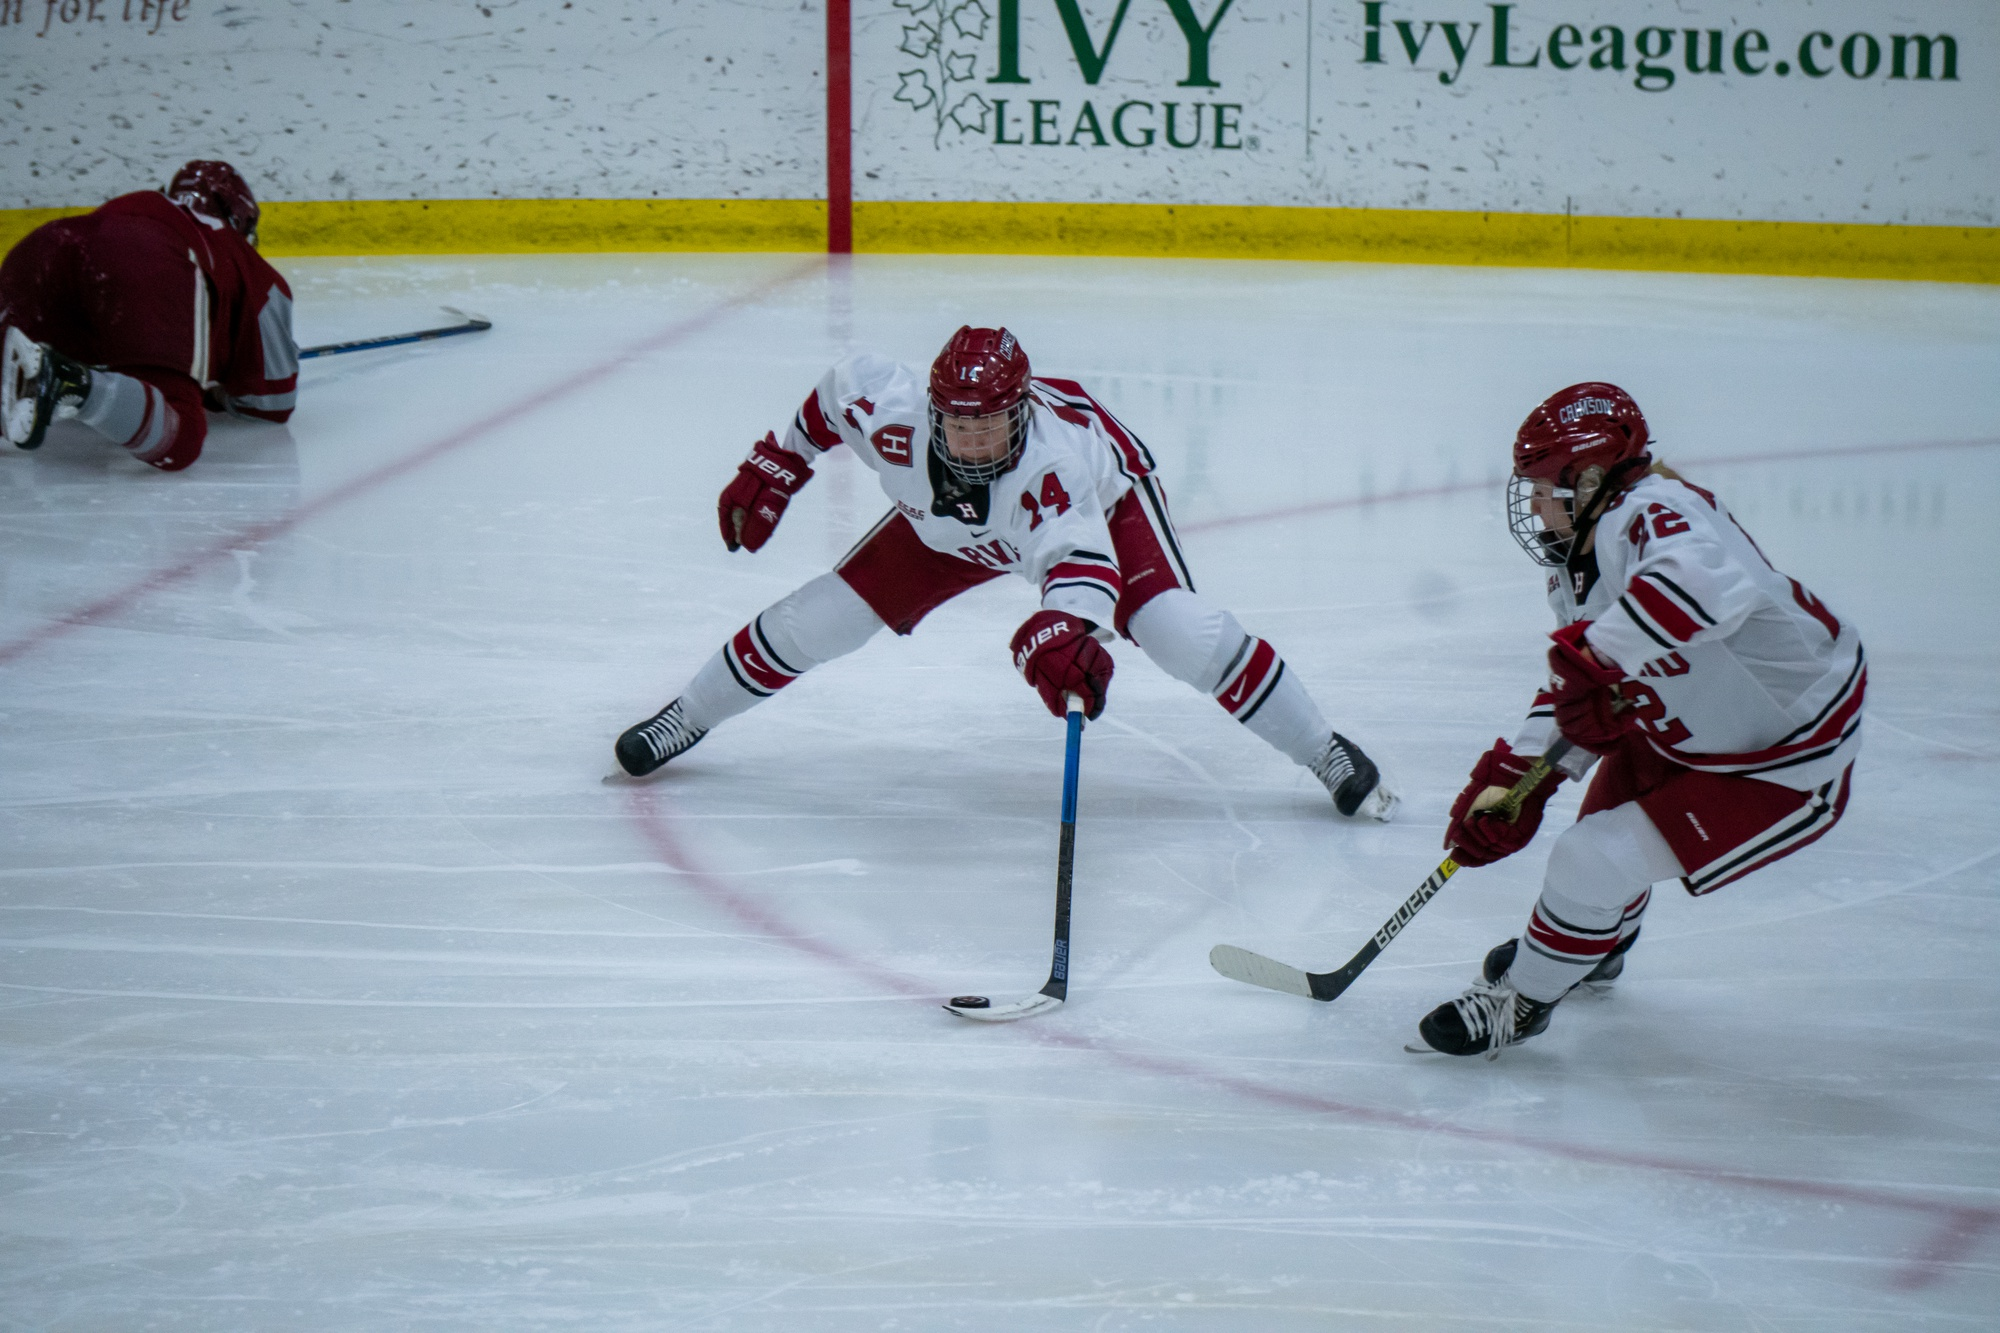 Sophomore forward Dominique Petrie returned to the lineup with two assists on Saturday night after an absence from injury. On Tuesday, Petrie found herself on the scoresheet again, but this time in the penalties section.